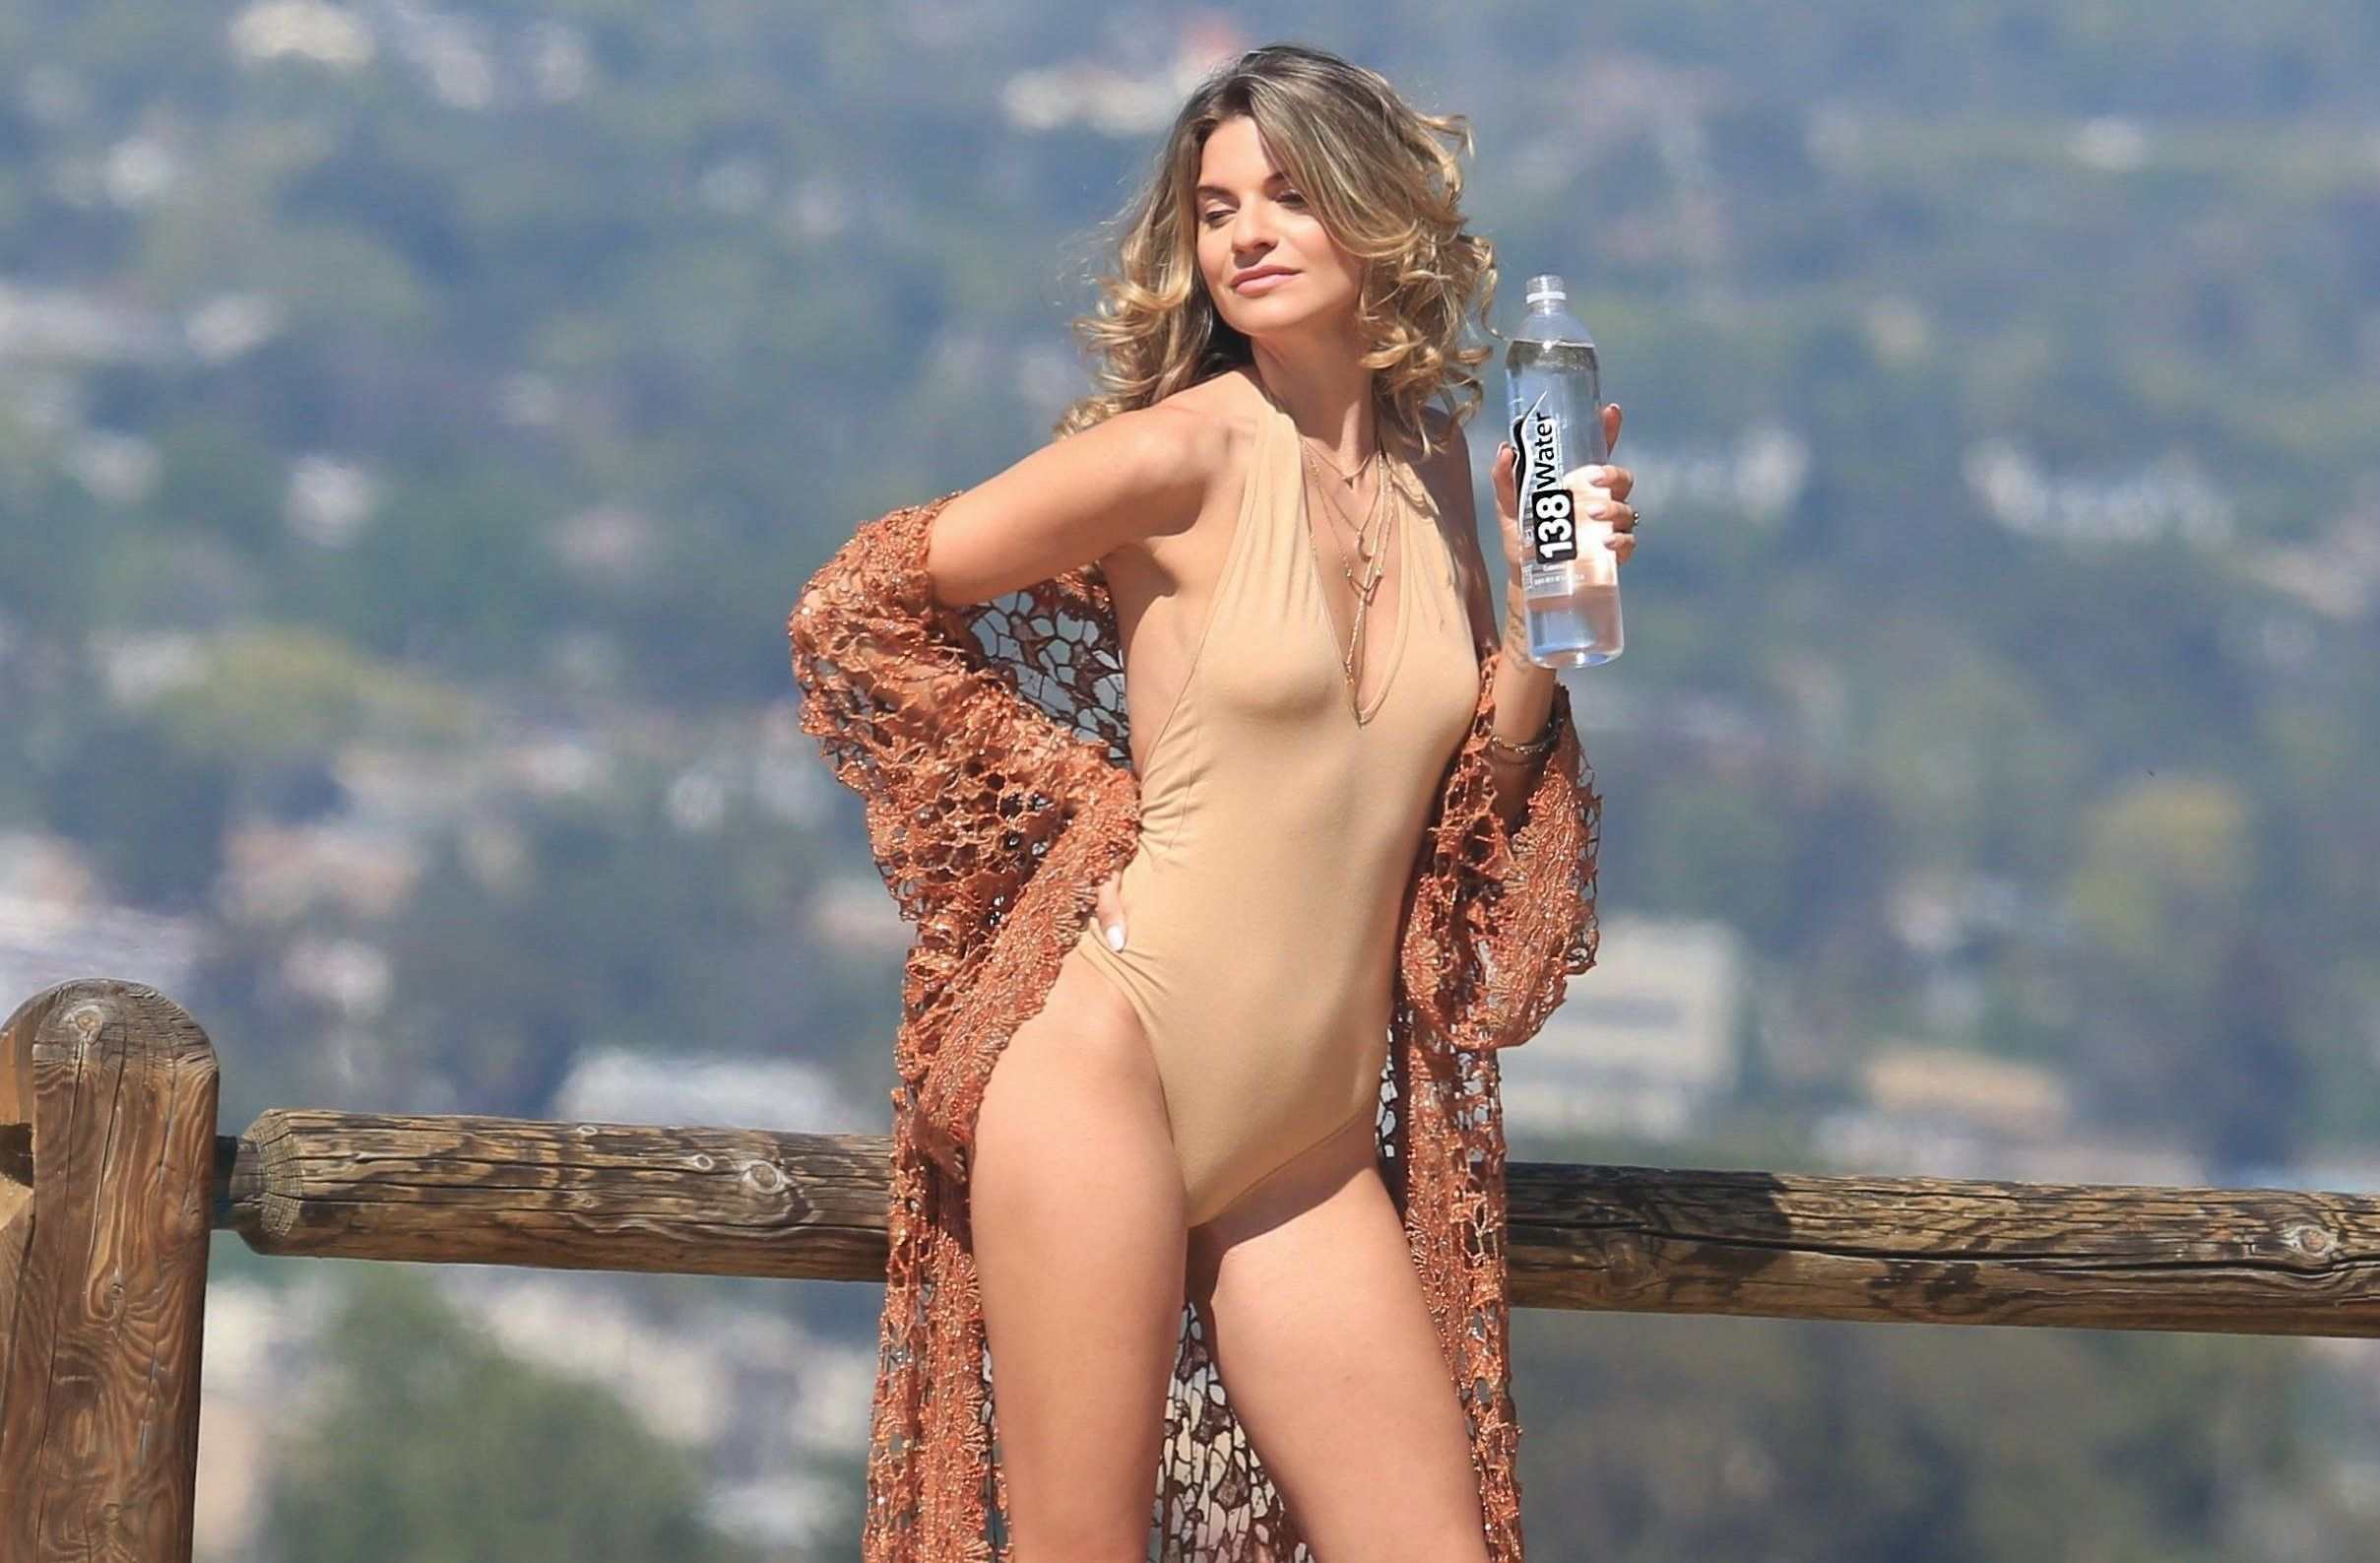 Rachel McCord 138 Water Photoshoot in Hollywood on June 14 2017